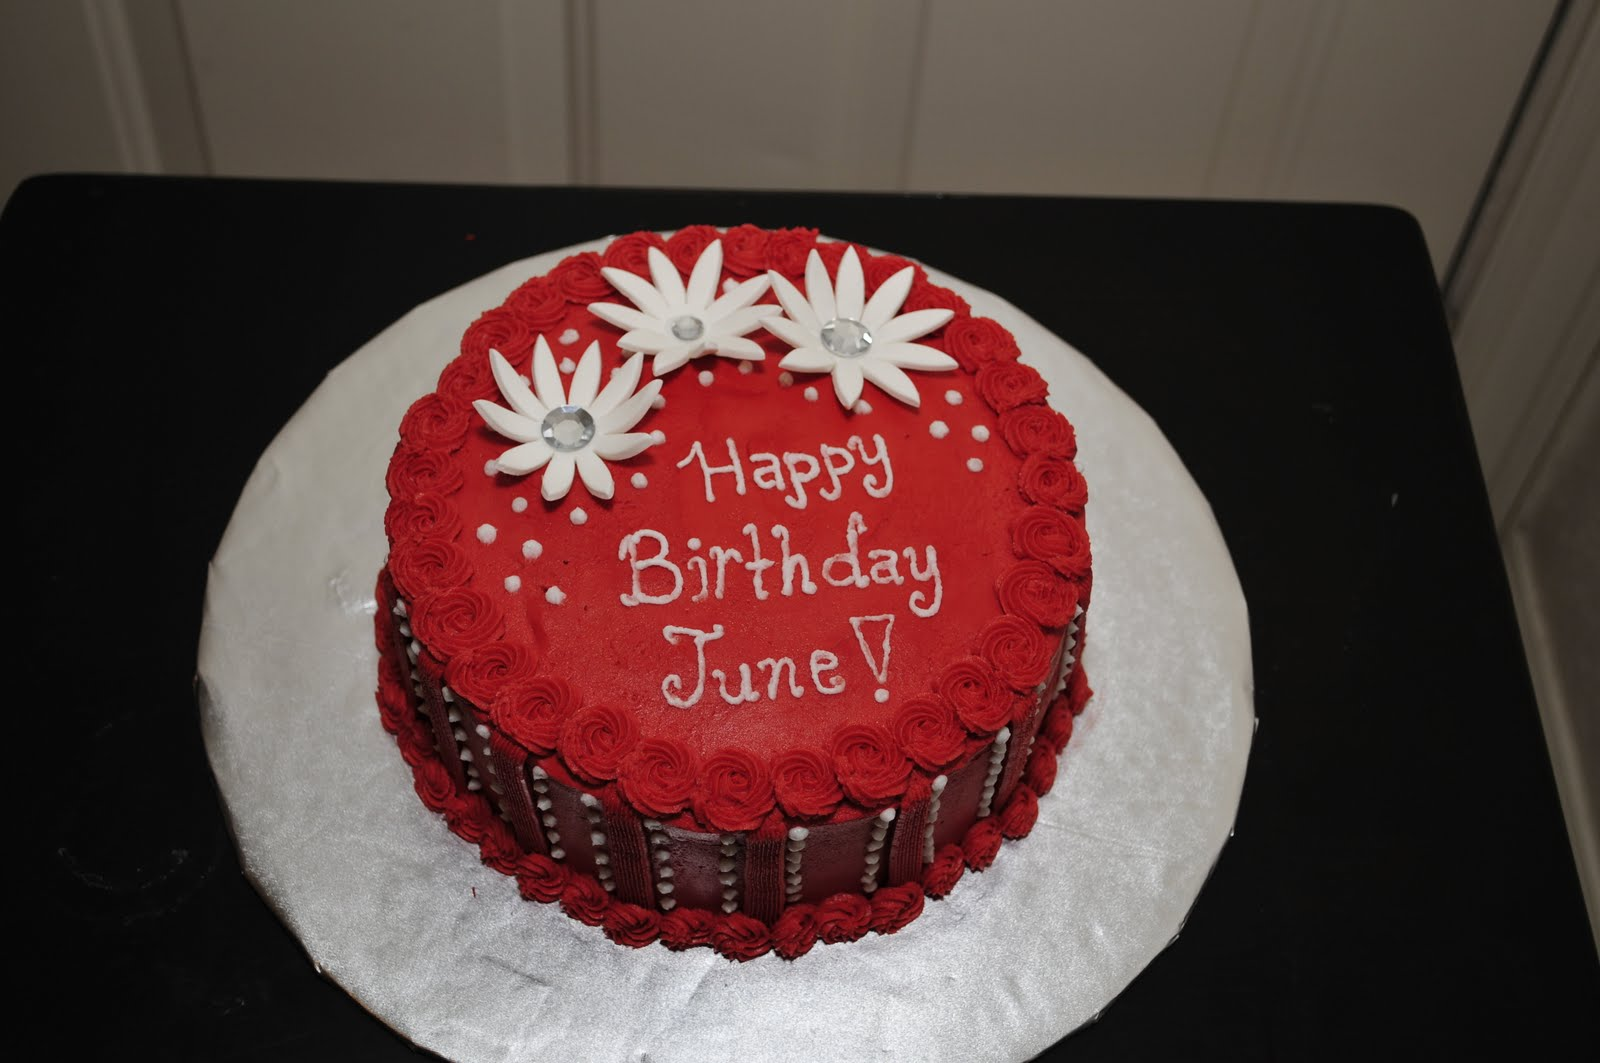 Lindsay's Custom Cakes: June's Birthday Cake